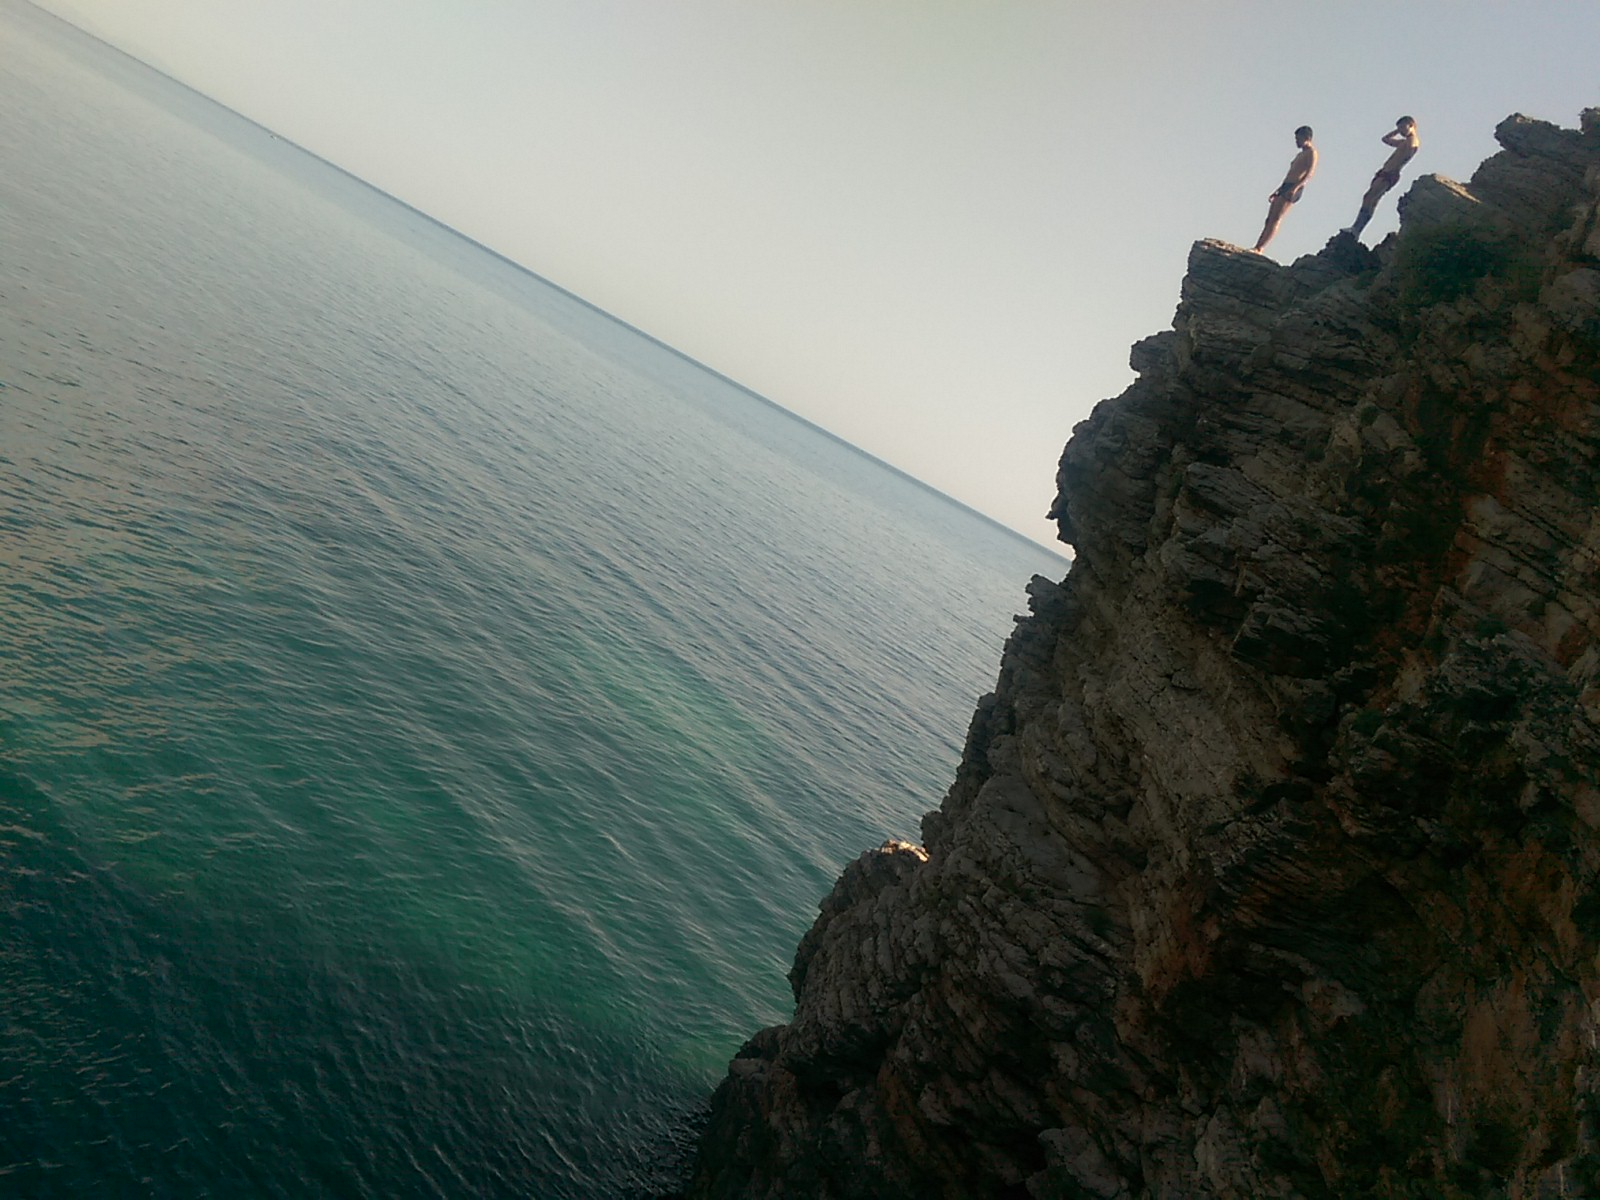 Wide bluegreen sea beyond a cliff the height of a two storey house, with two preteen boys standing at the top